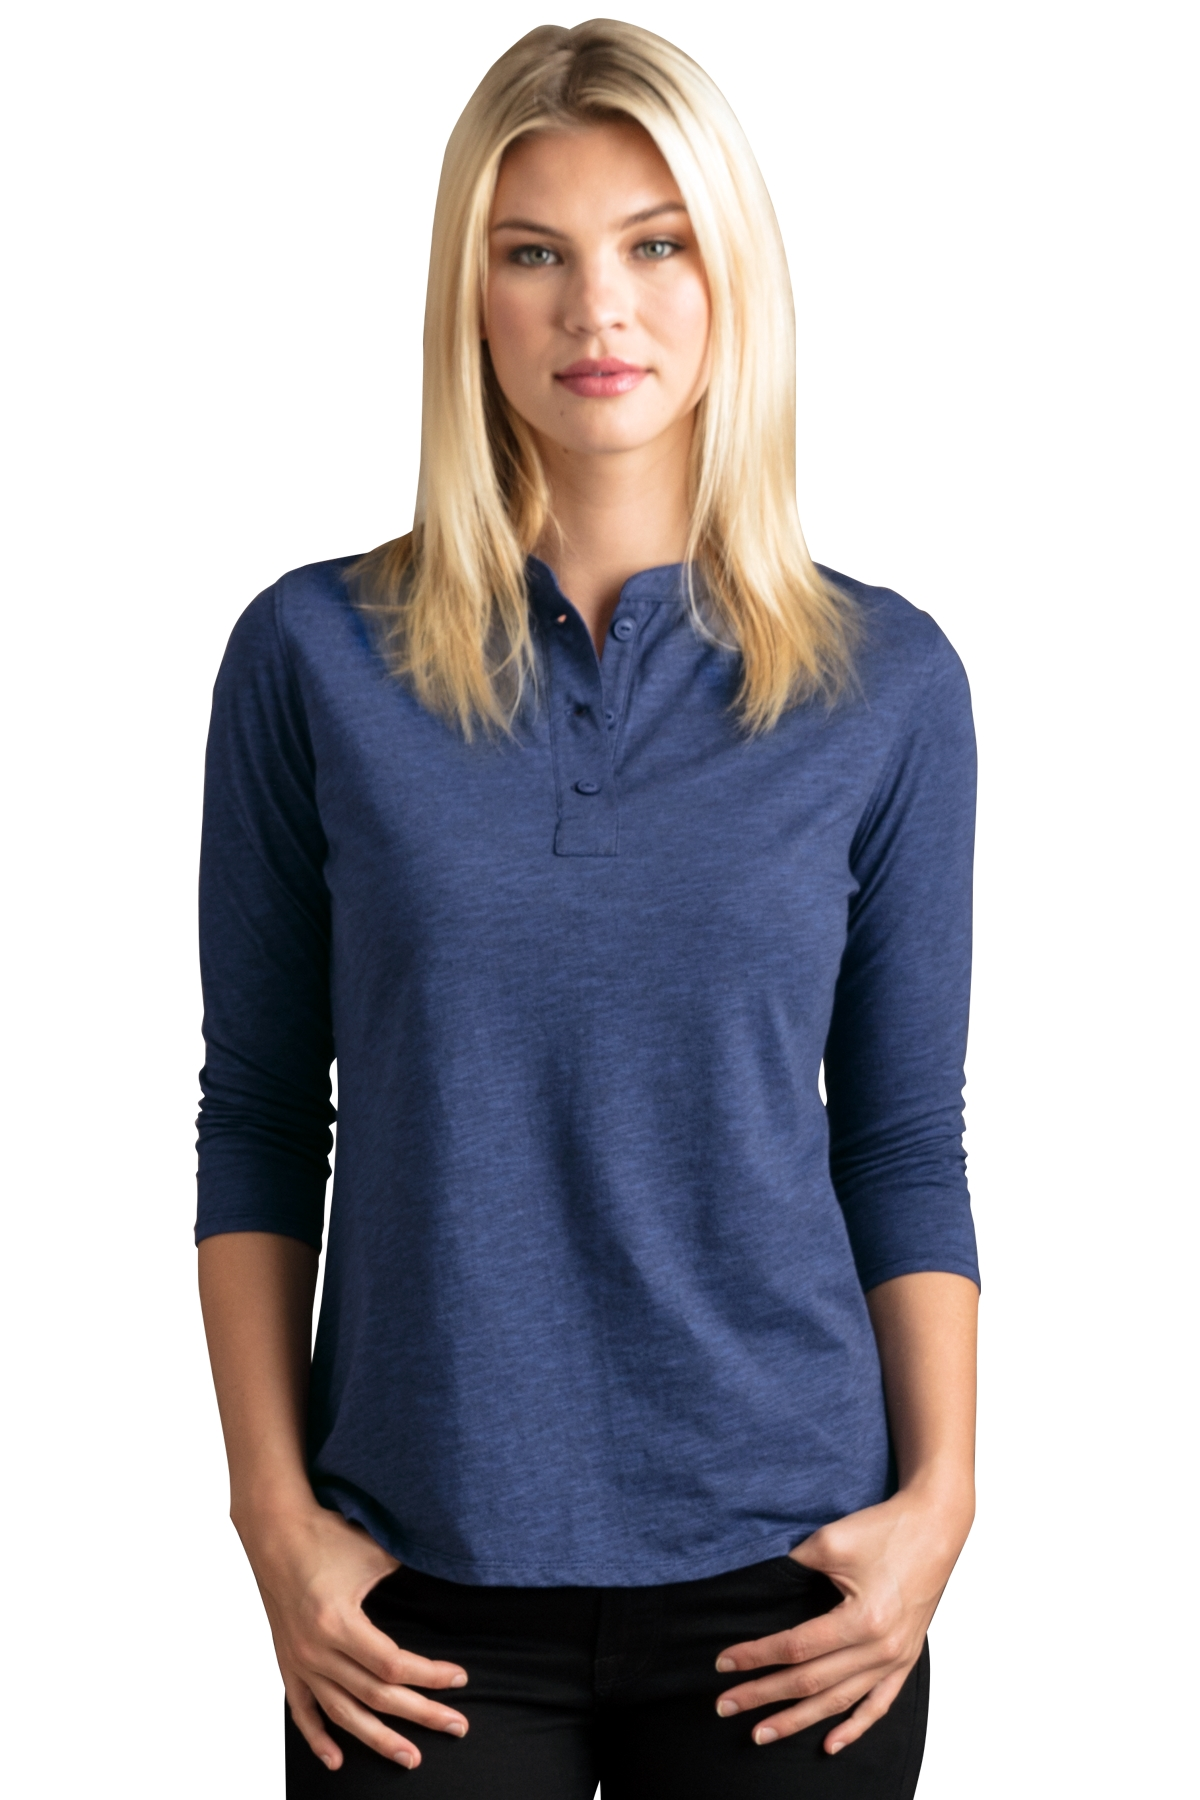 Vansport 2321 - Women's Cambridge Henley